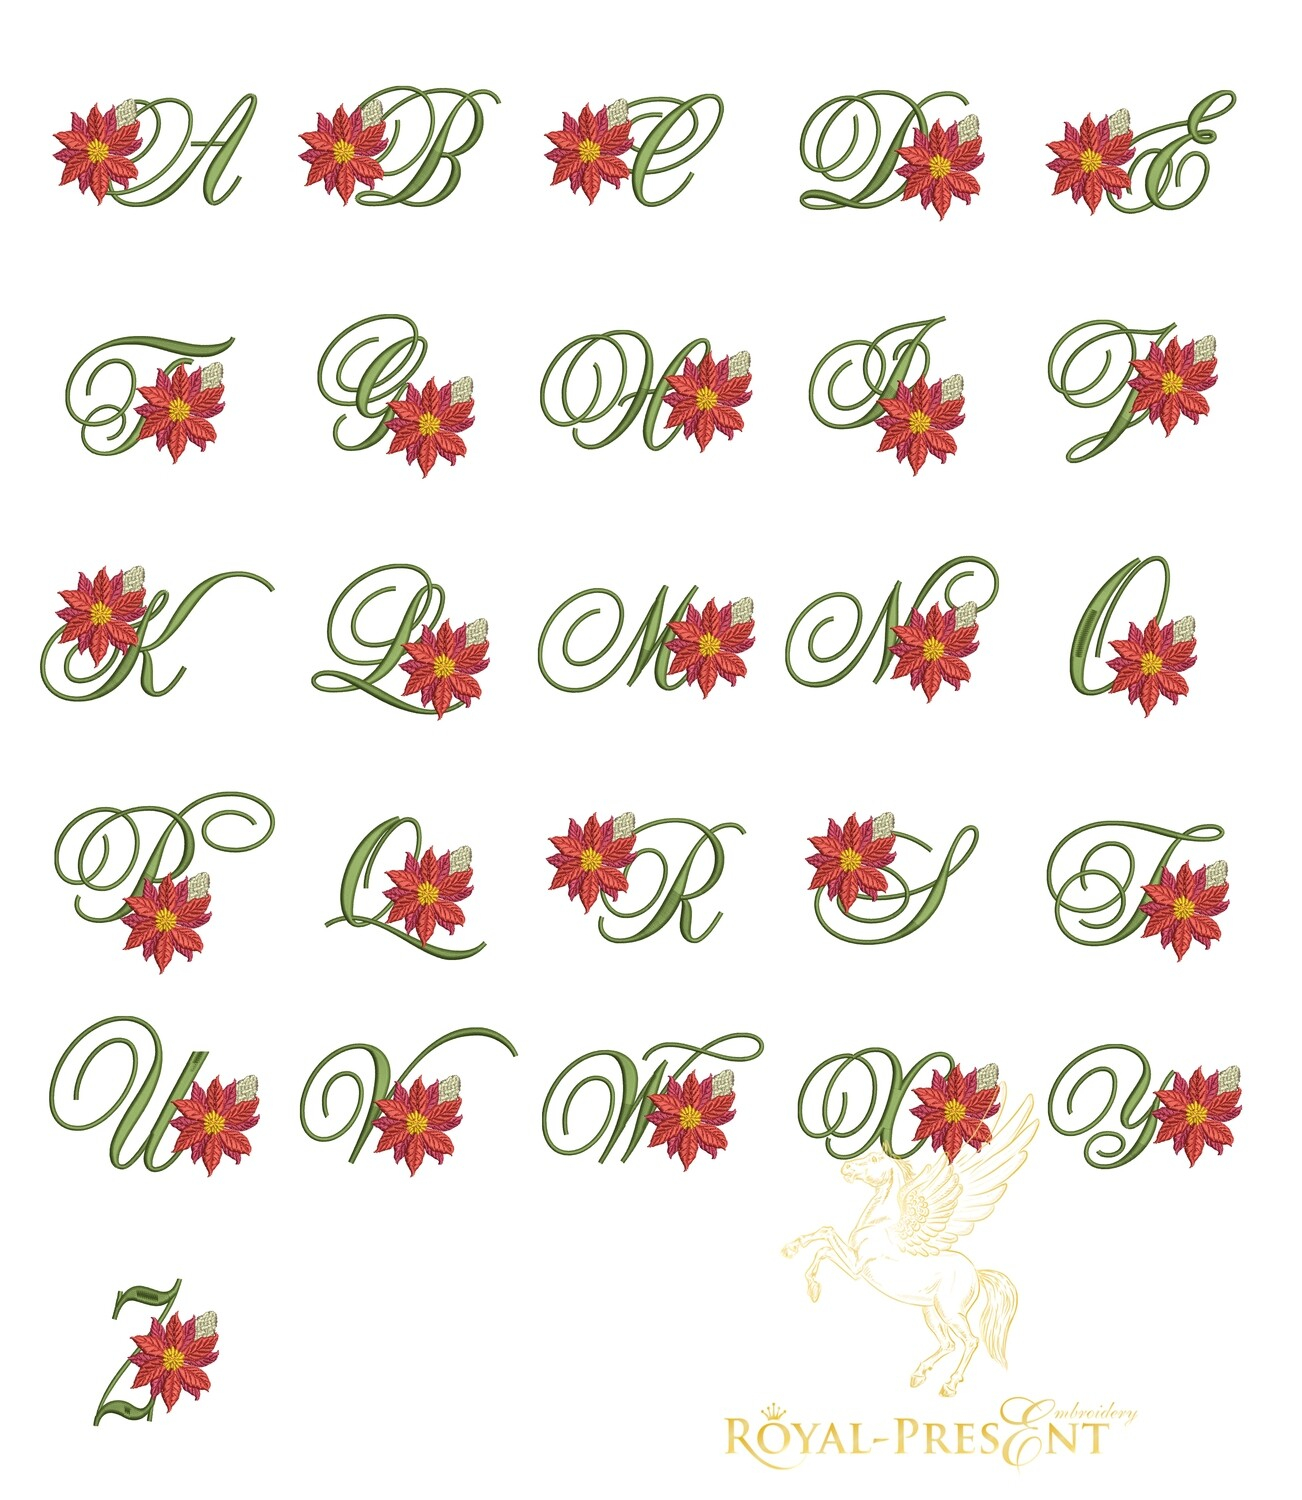 Nautical Embroidery Patterns Nautical Marine Life Embroidery Designs